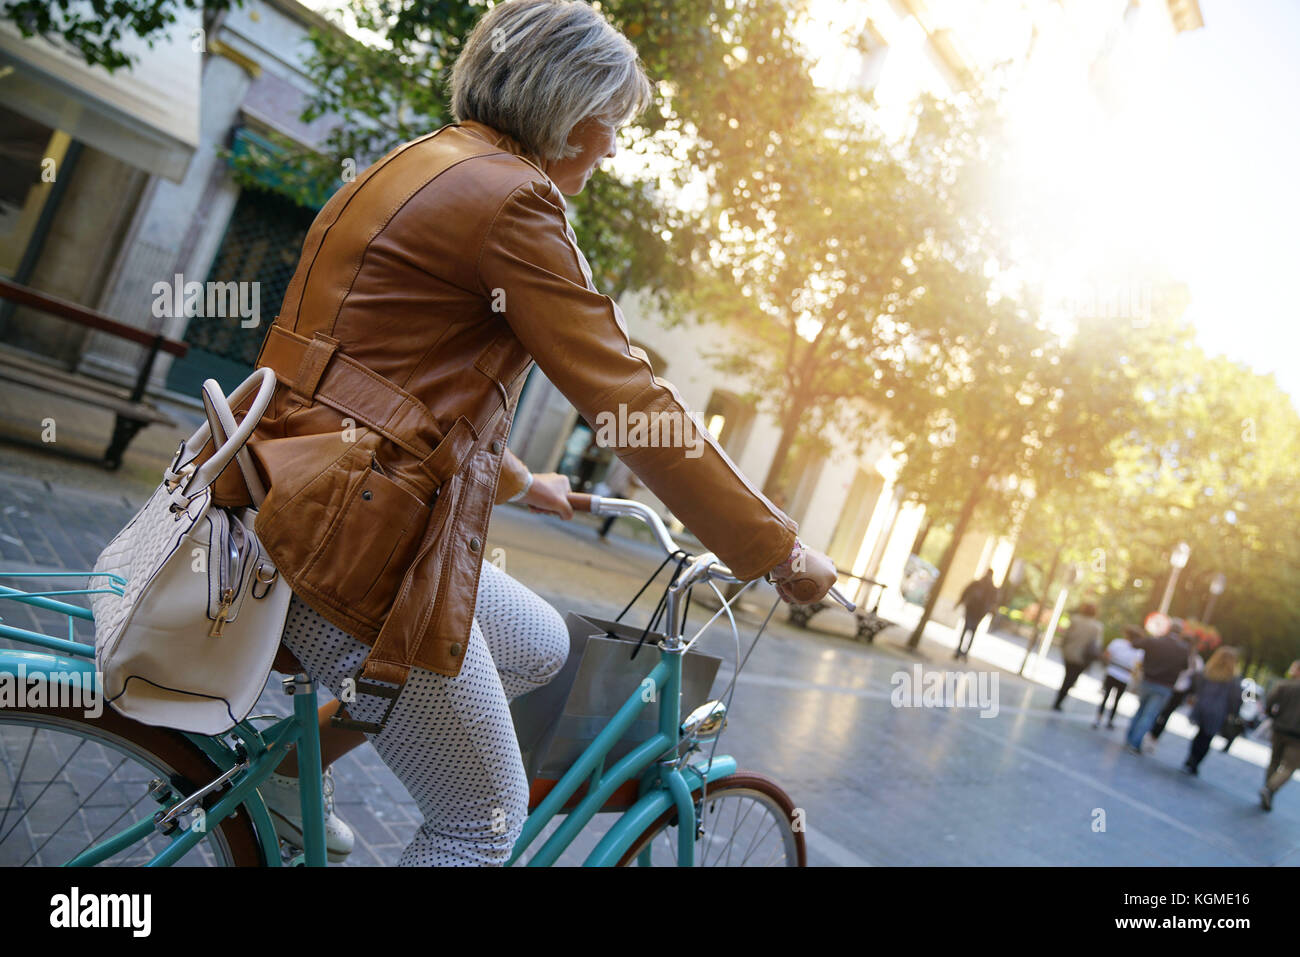 Senior woman riding city bike in town - Stock Image